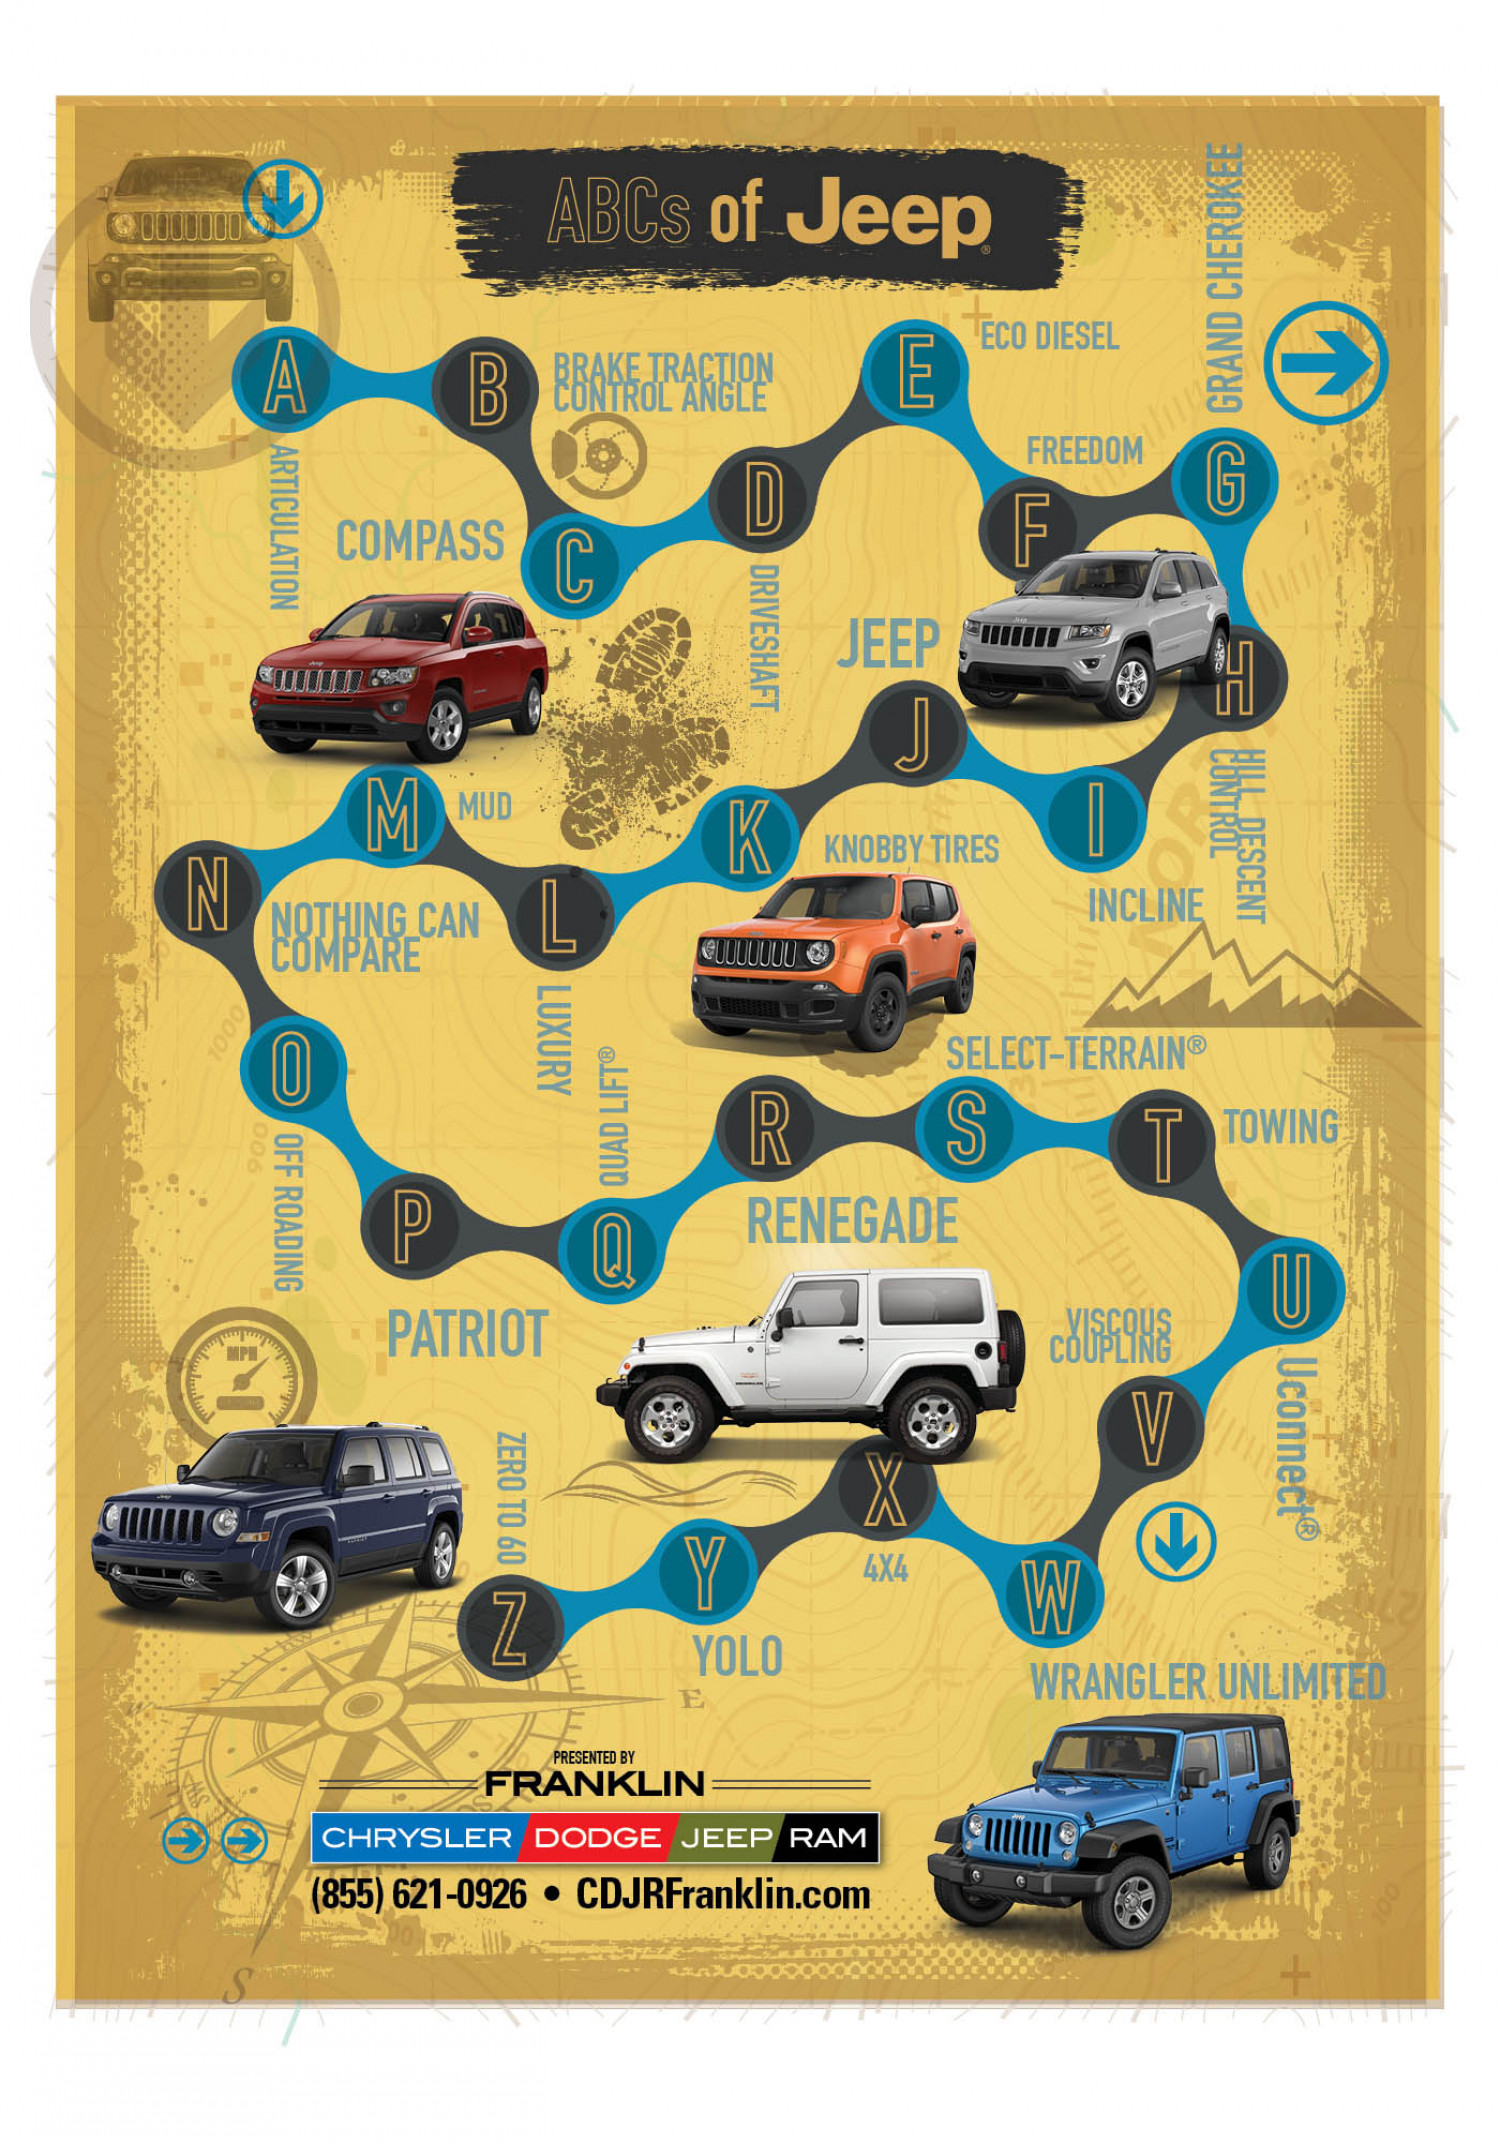 ABCs of Jeep Infographic